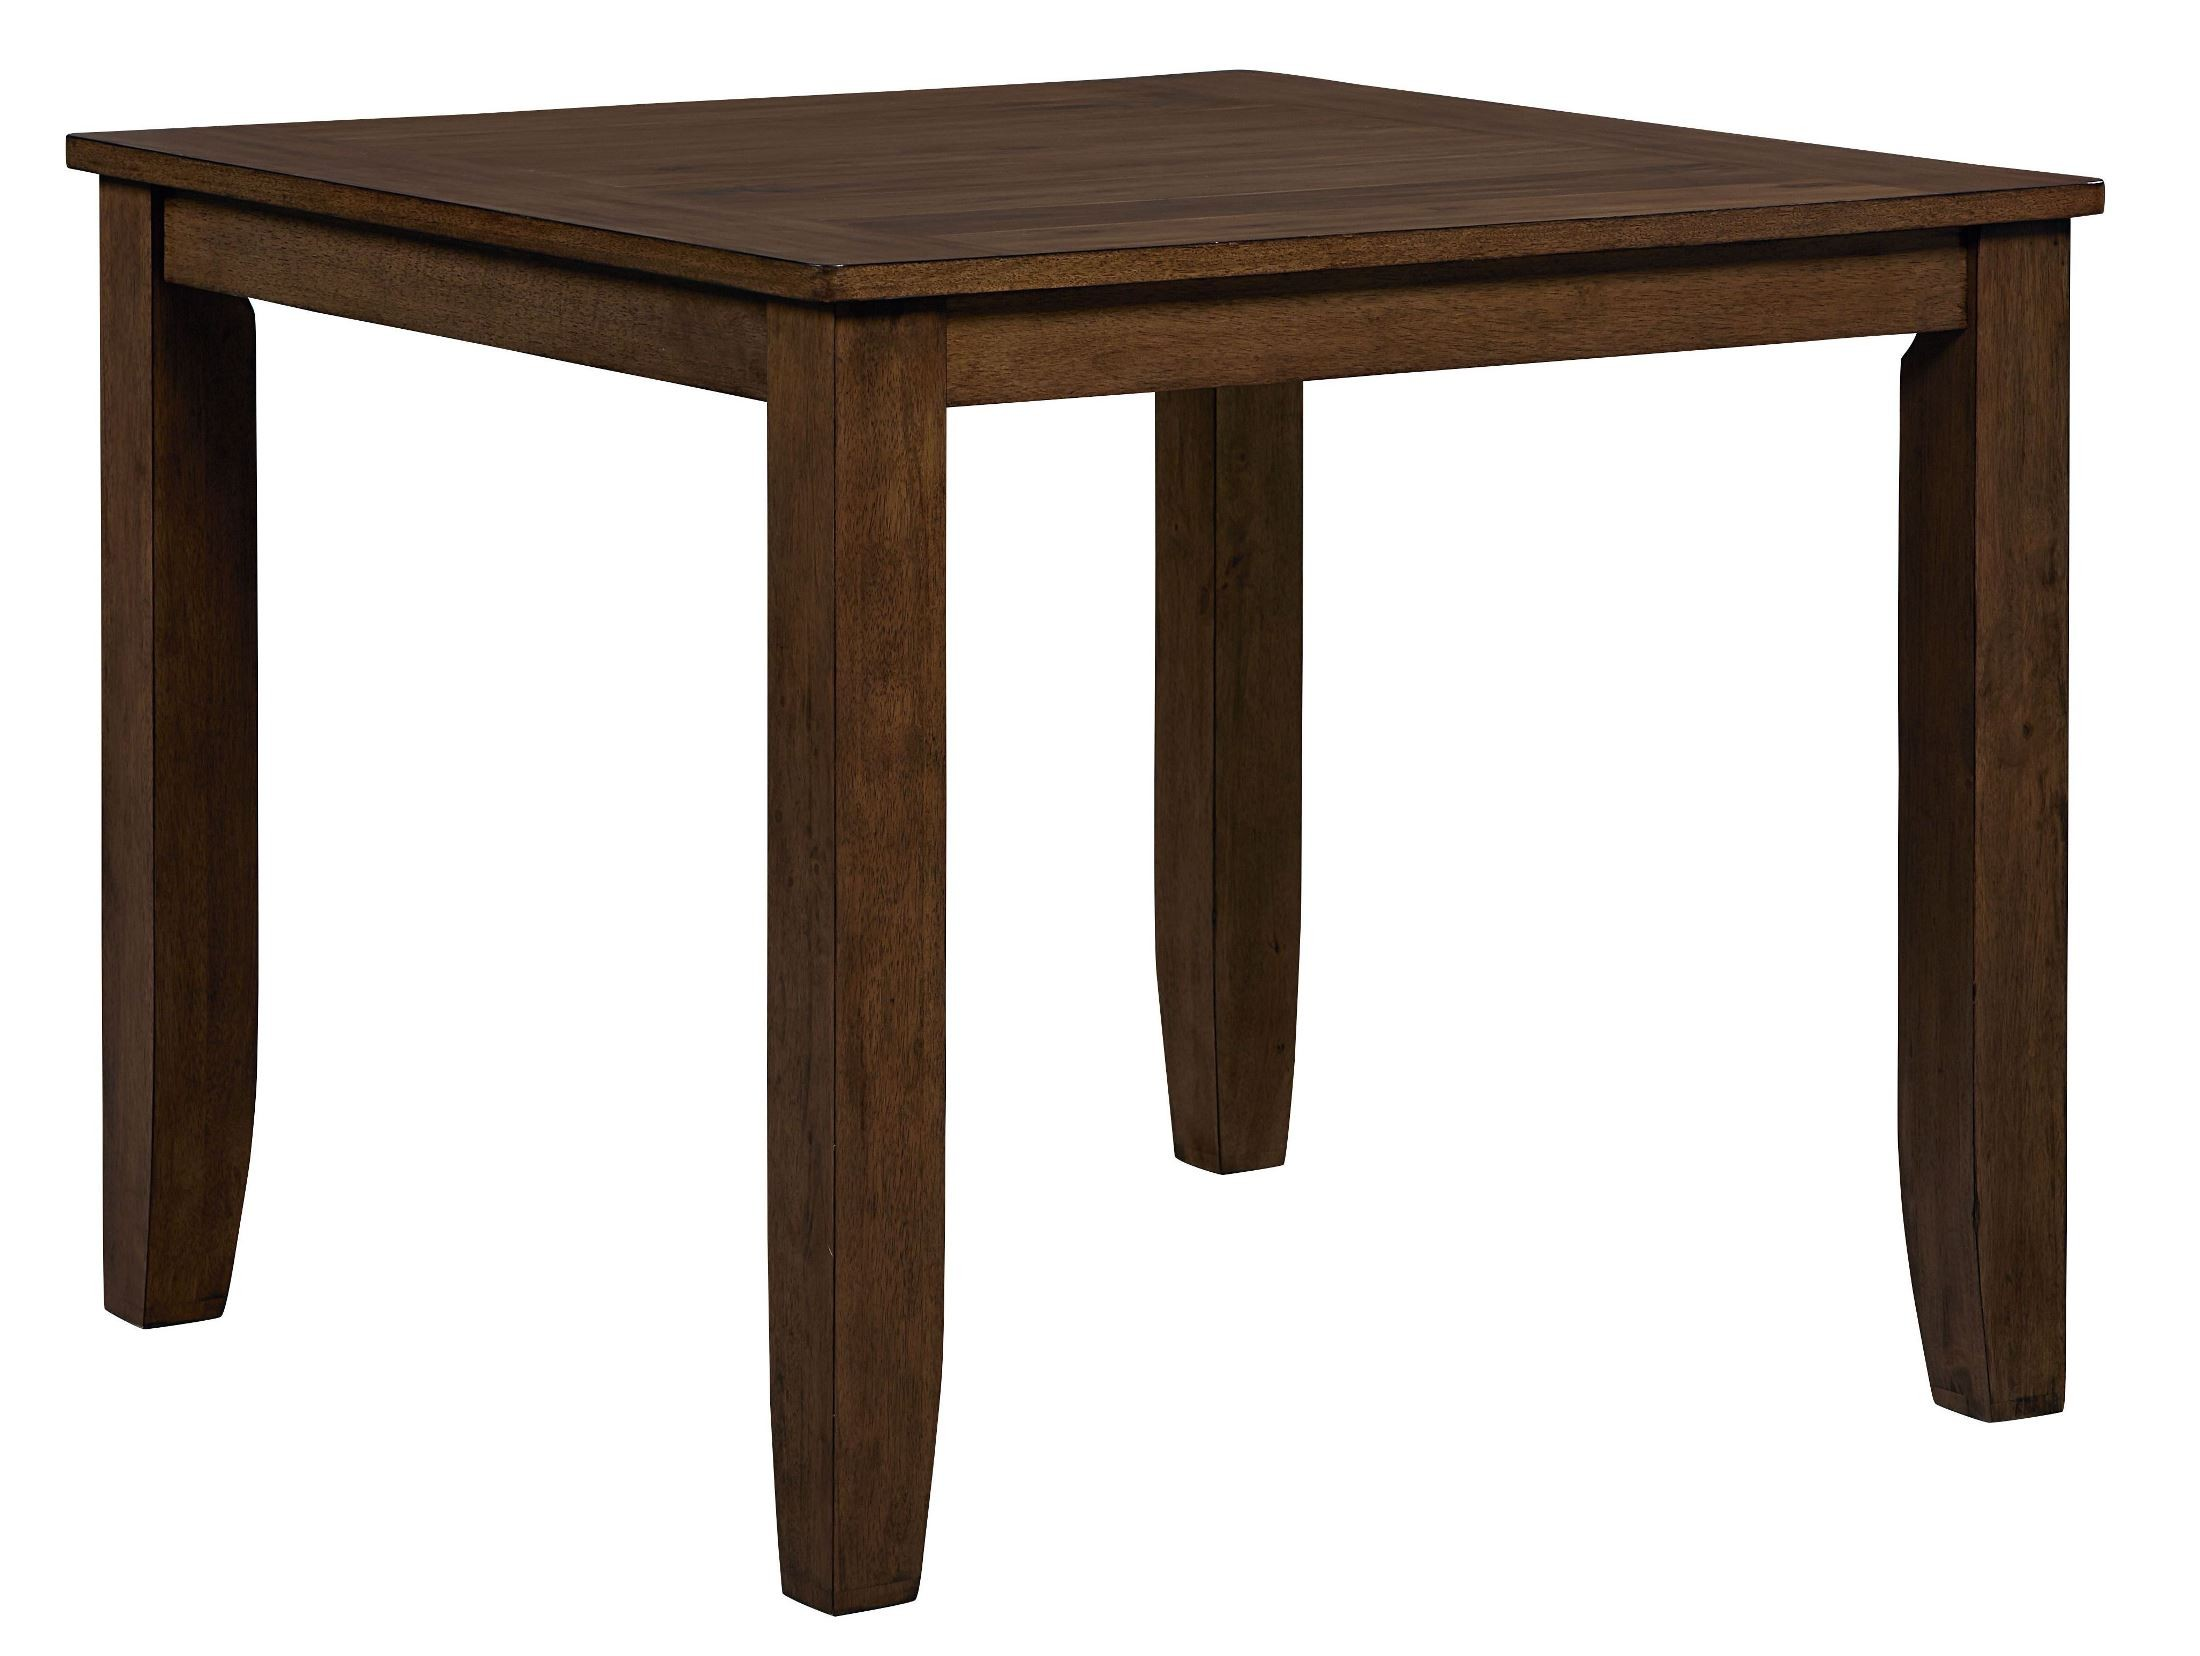 Counter Height Rectangular Table : Vintage Sienna Brown Rectangular Counter Height Table from Standard ...